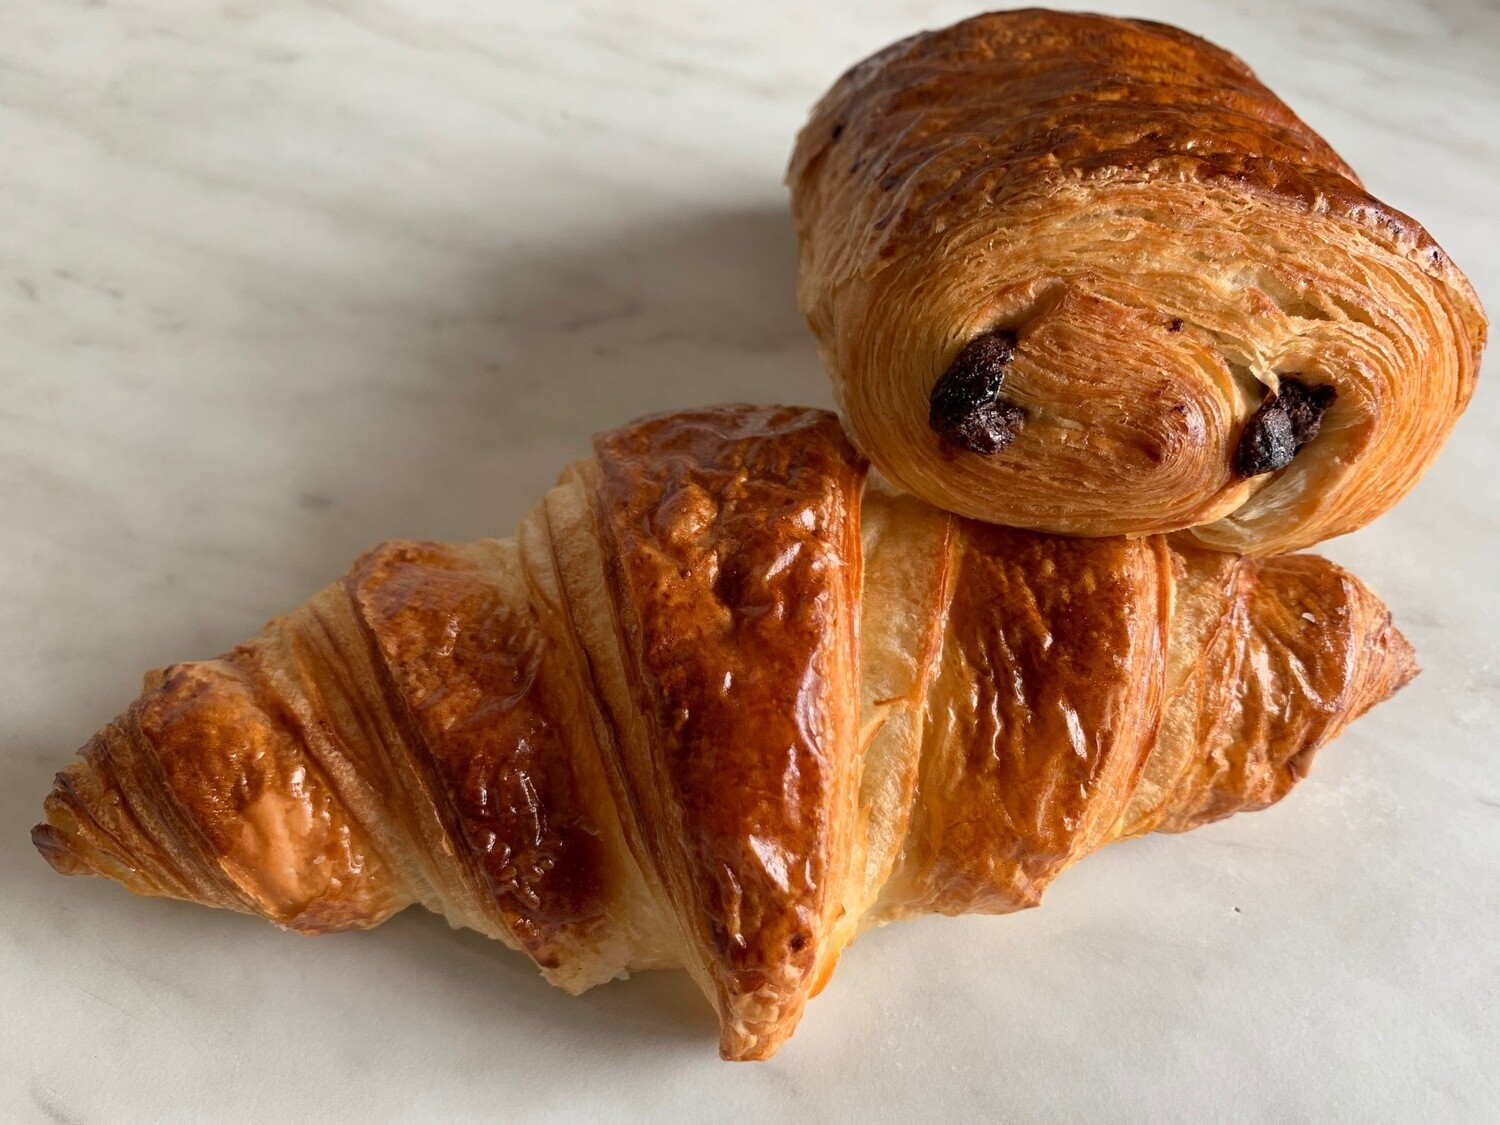 4 french pastries ( 2 butter croissant and 2 pain chocolat)